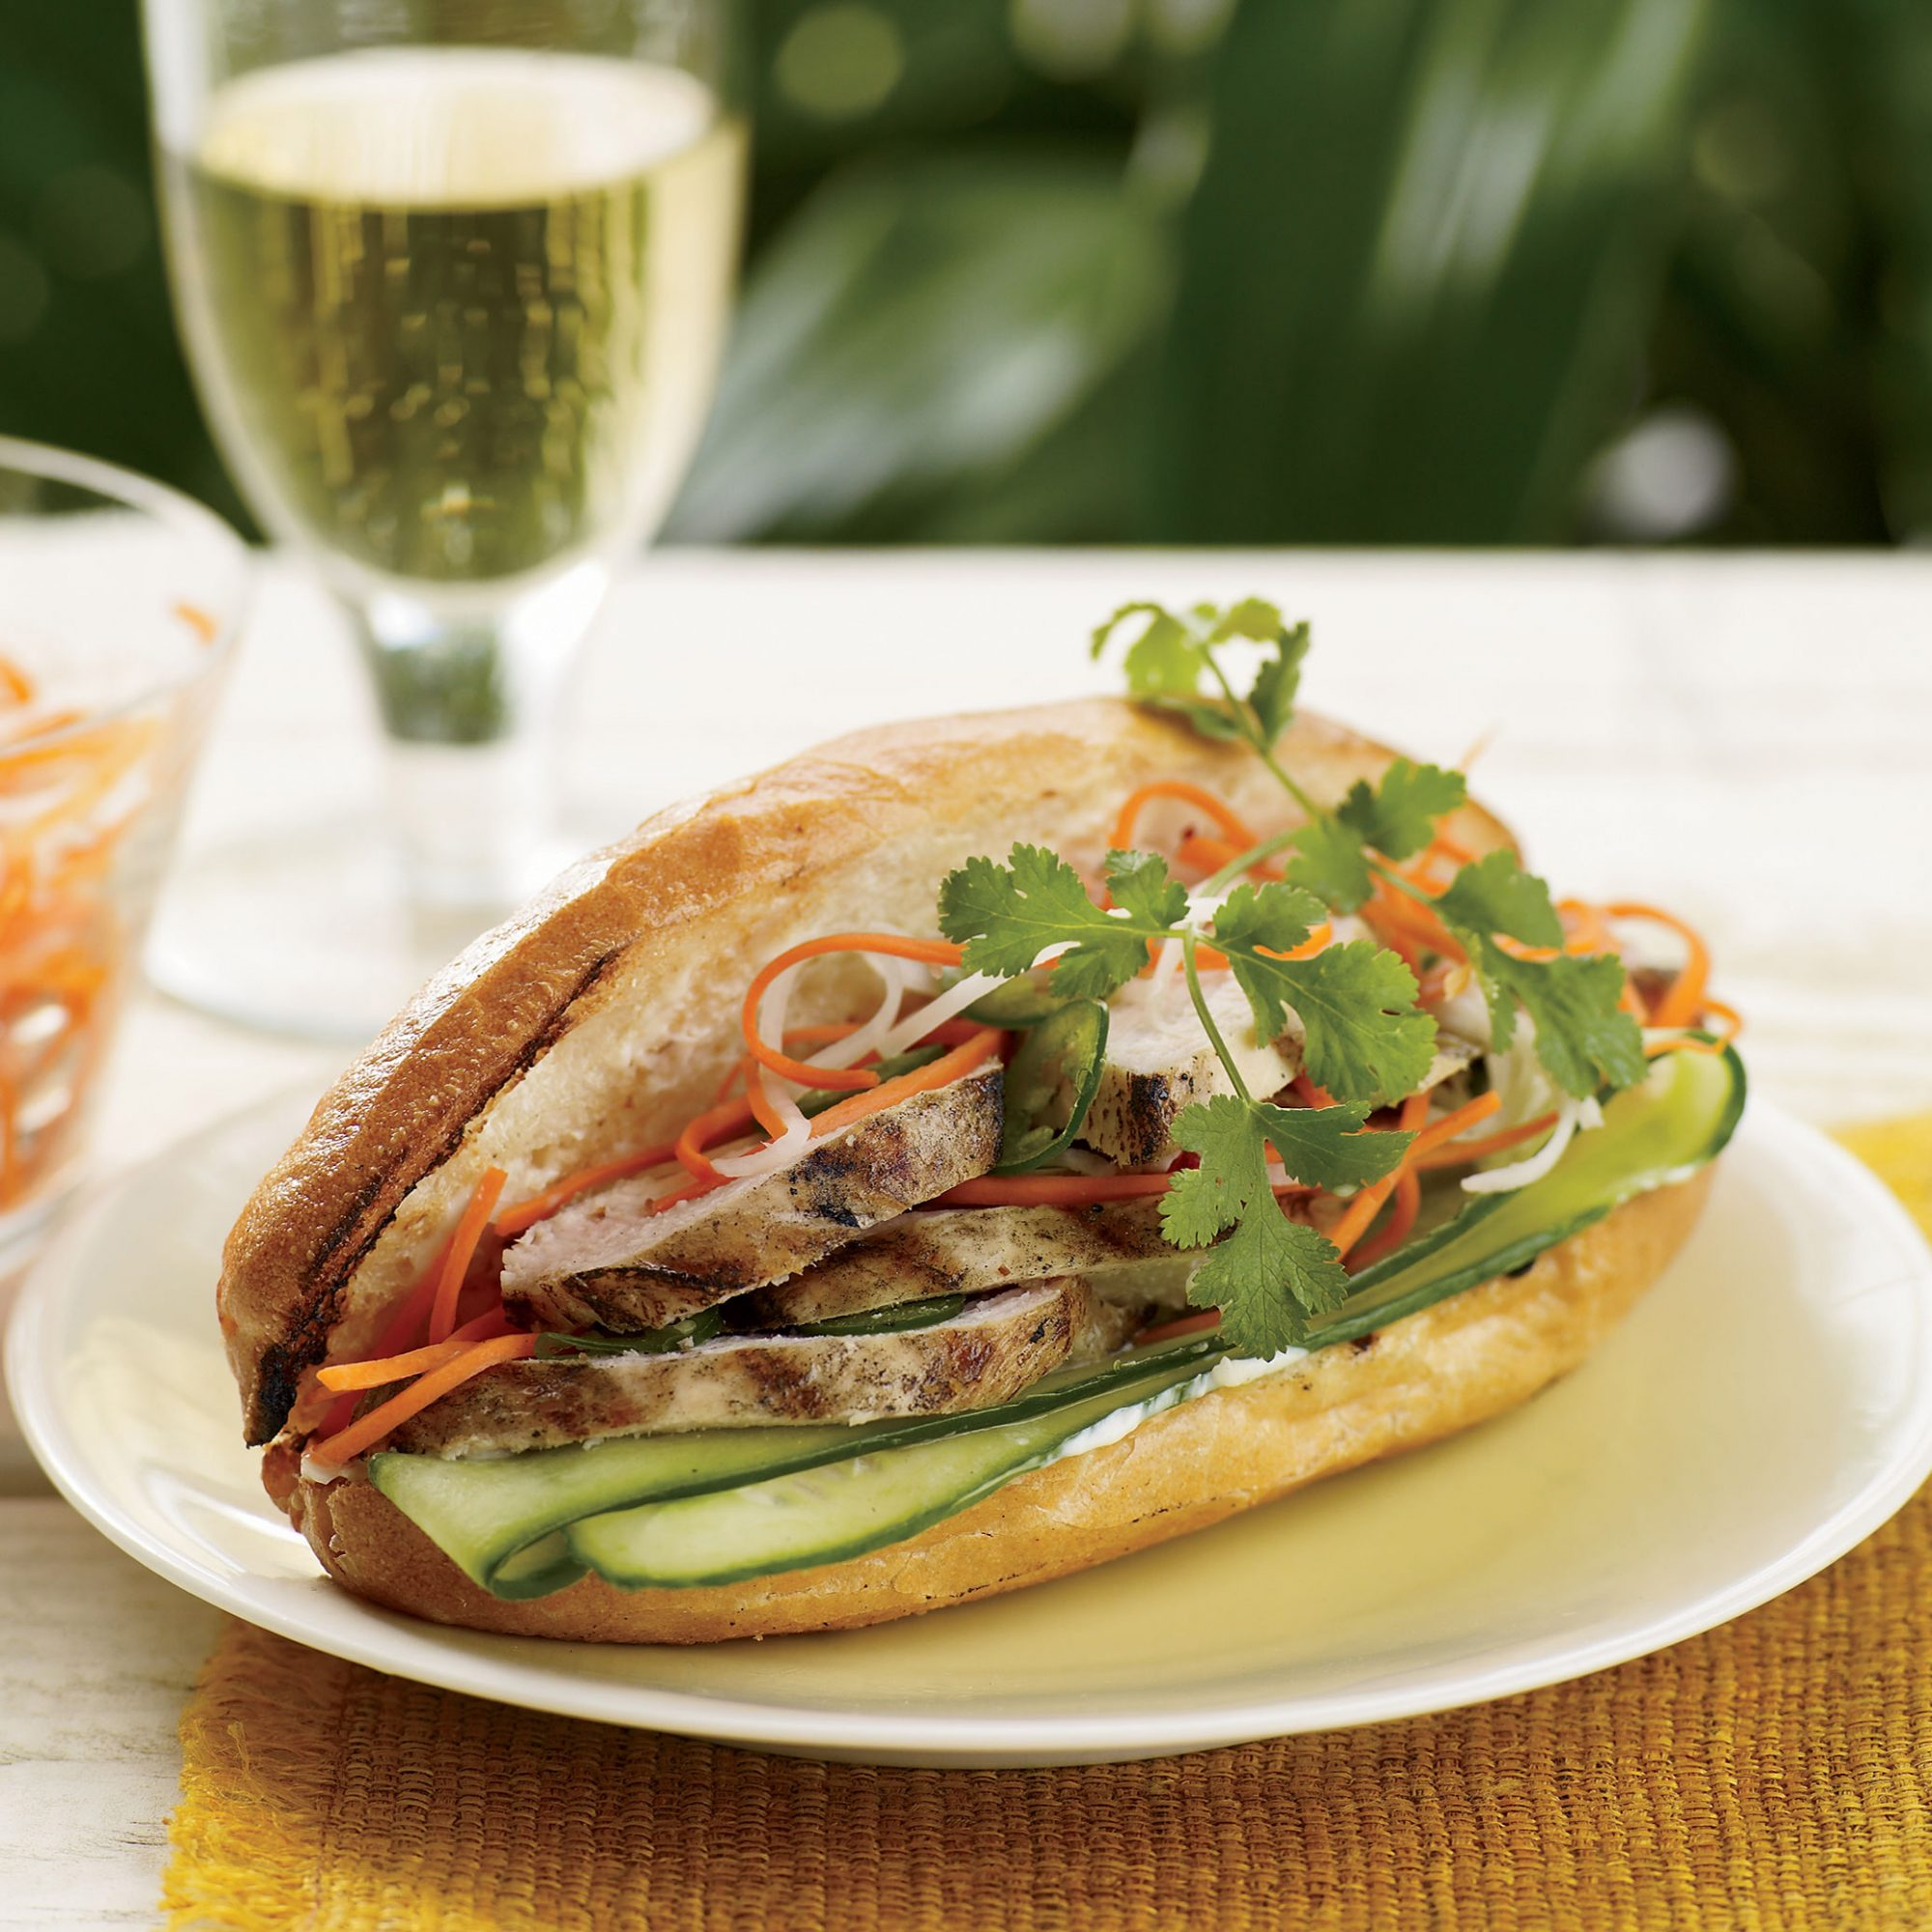 200806-r-chicken-banh-mi.jpg